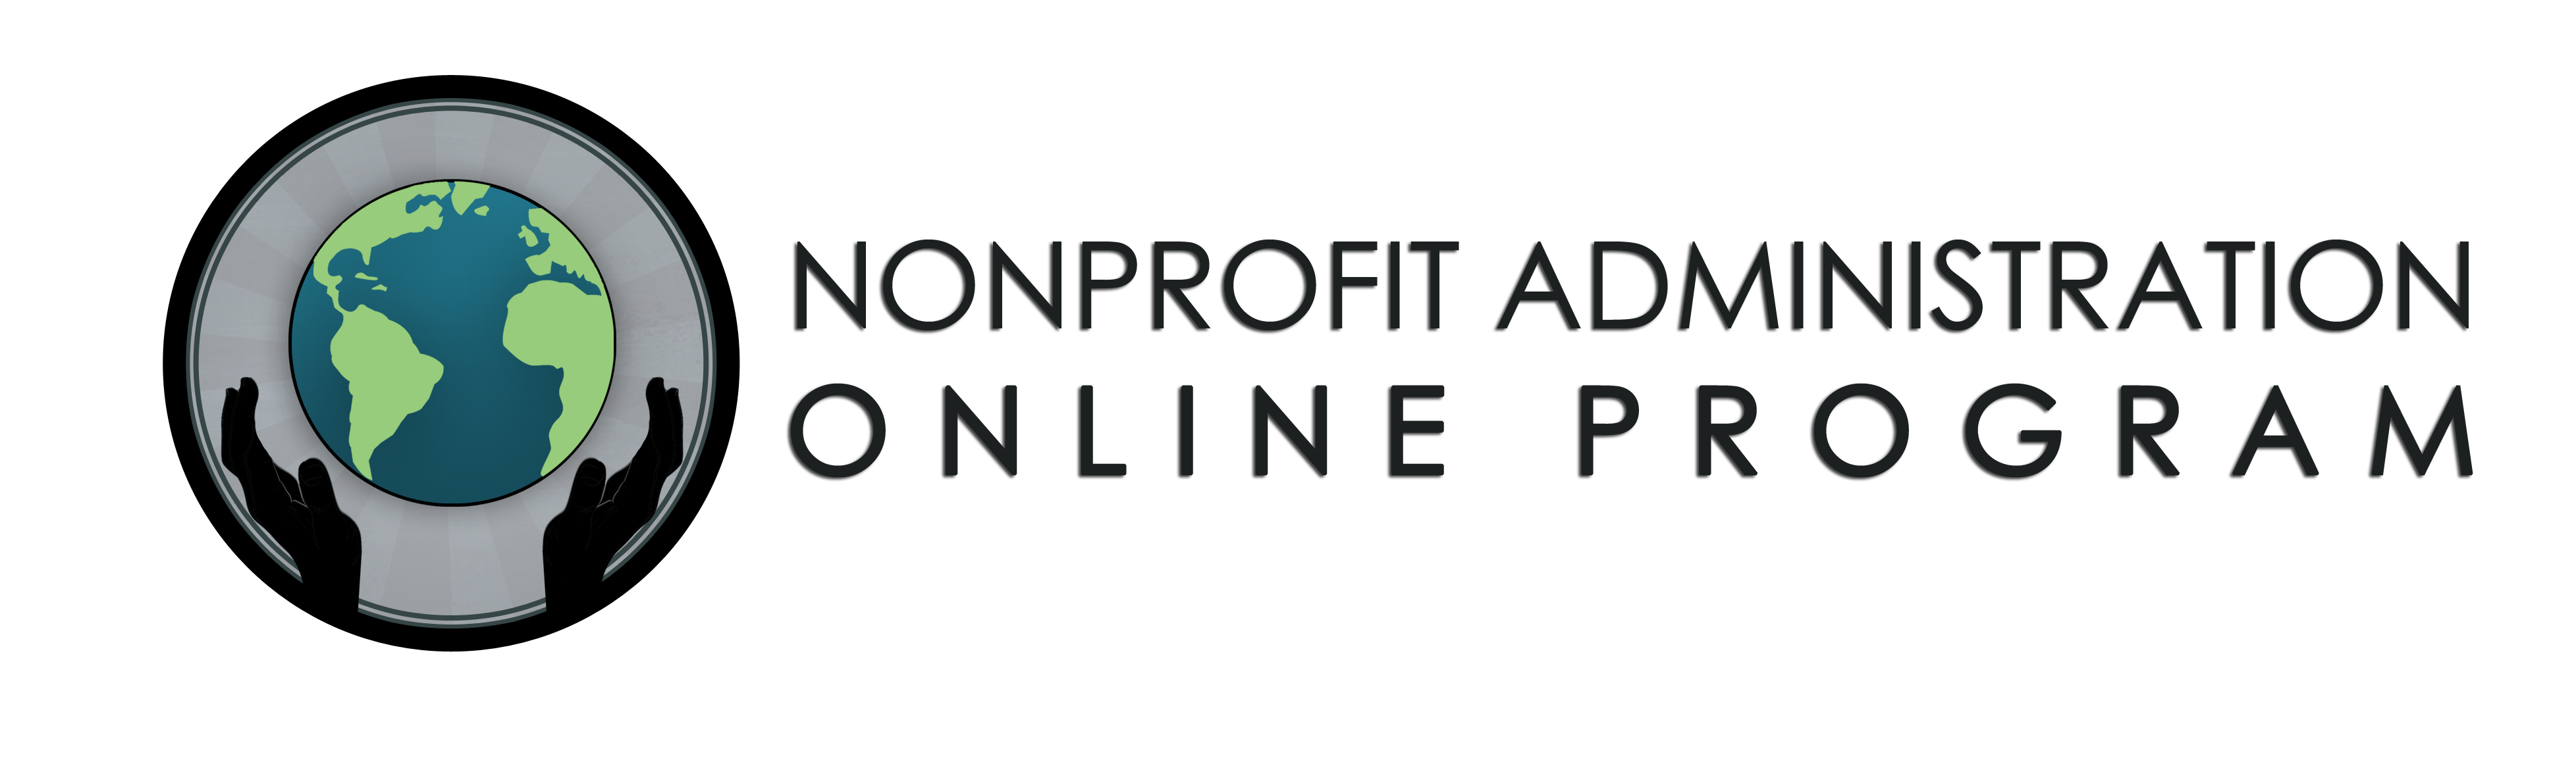 Nonprofit Administration Online Program Announcements